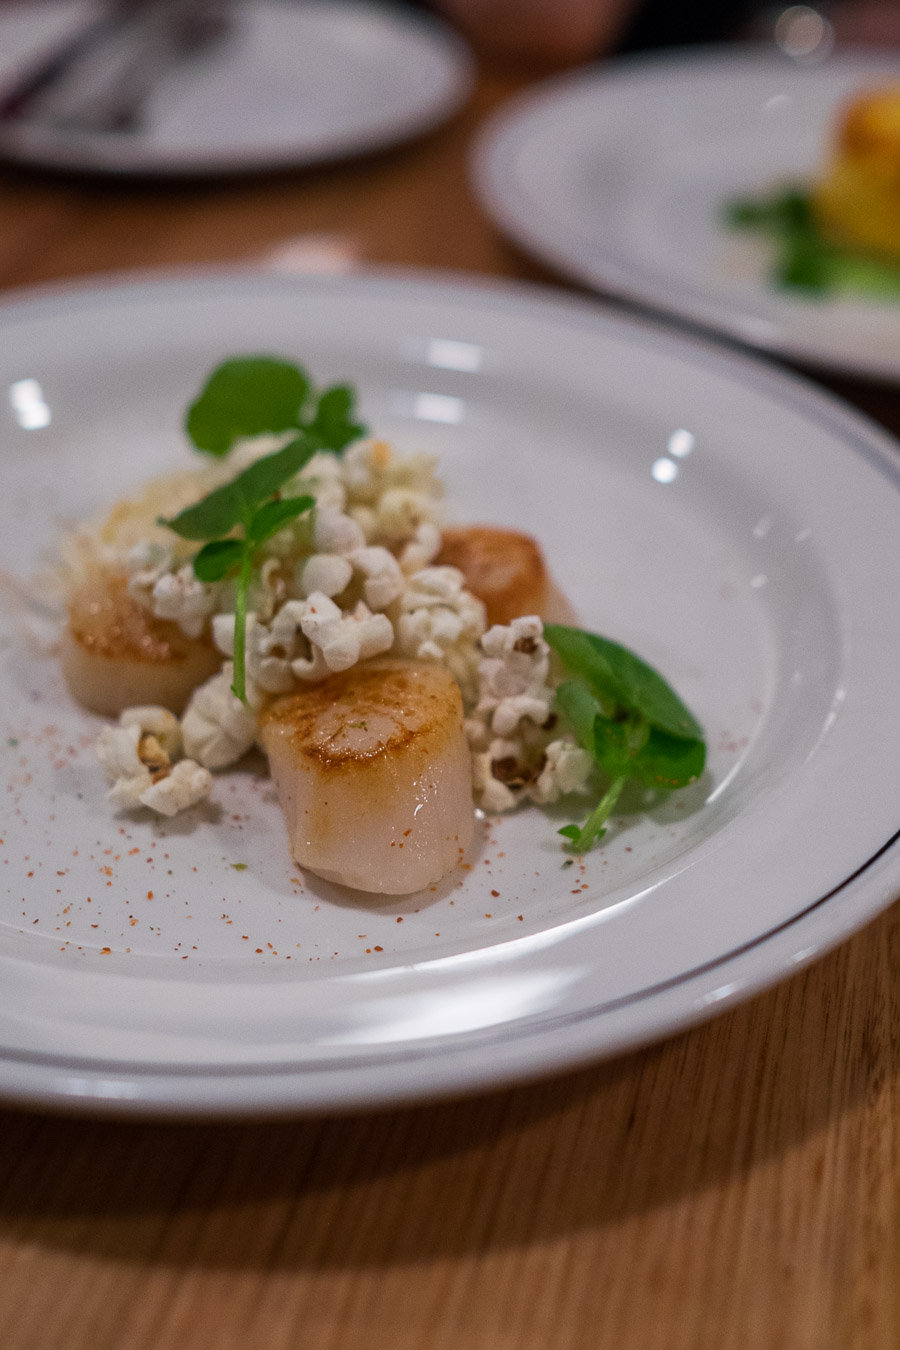 Pop scallops (AU$13) - scallops with popcorn, chilli, watercress and celeriac.